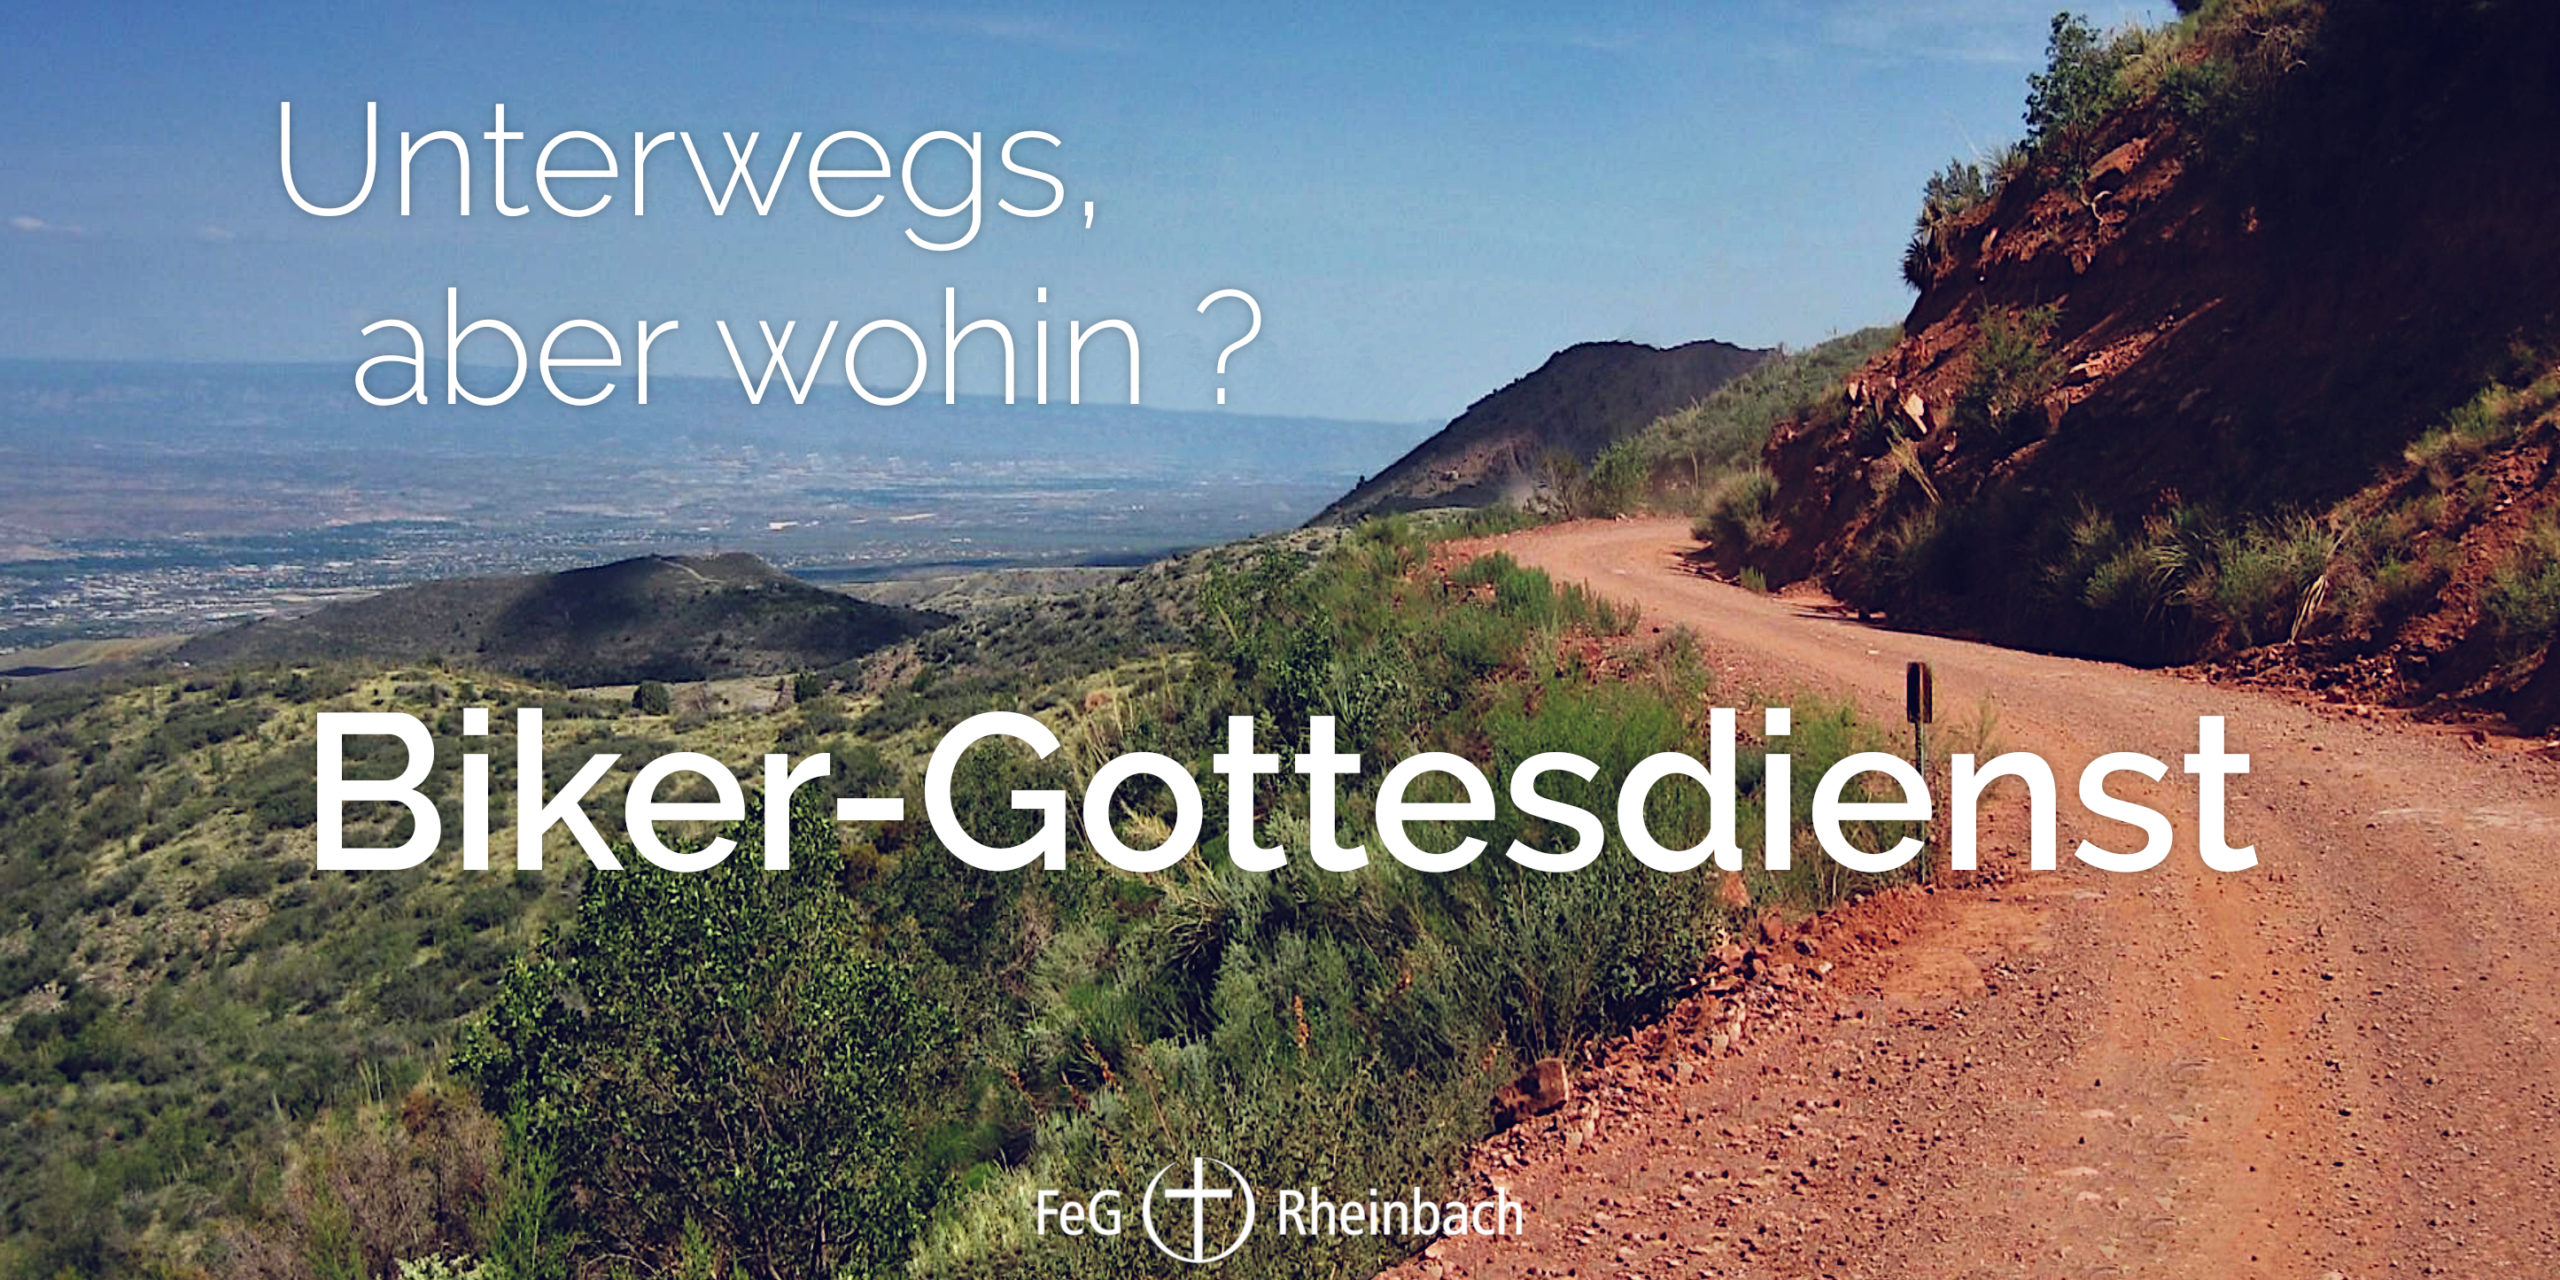 You are currently viewing Biker-Gottesdienst